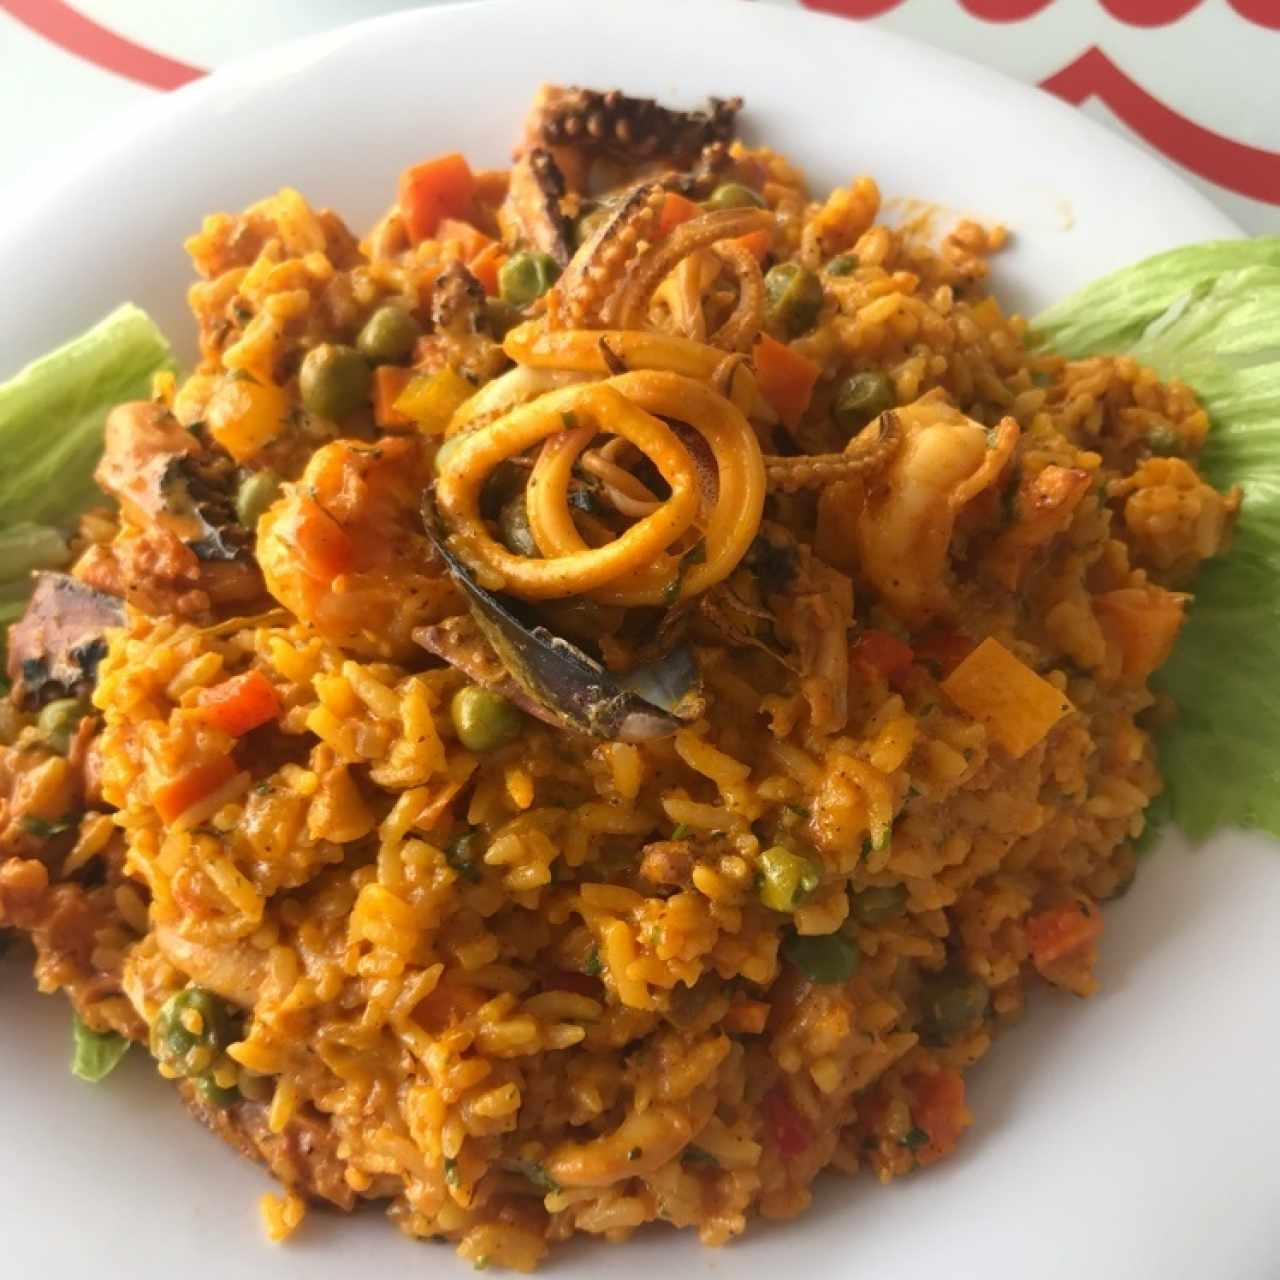 ARROCES - Arroz con Mariscos